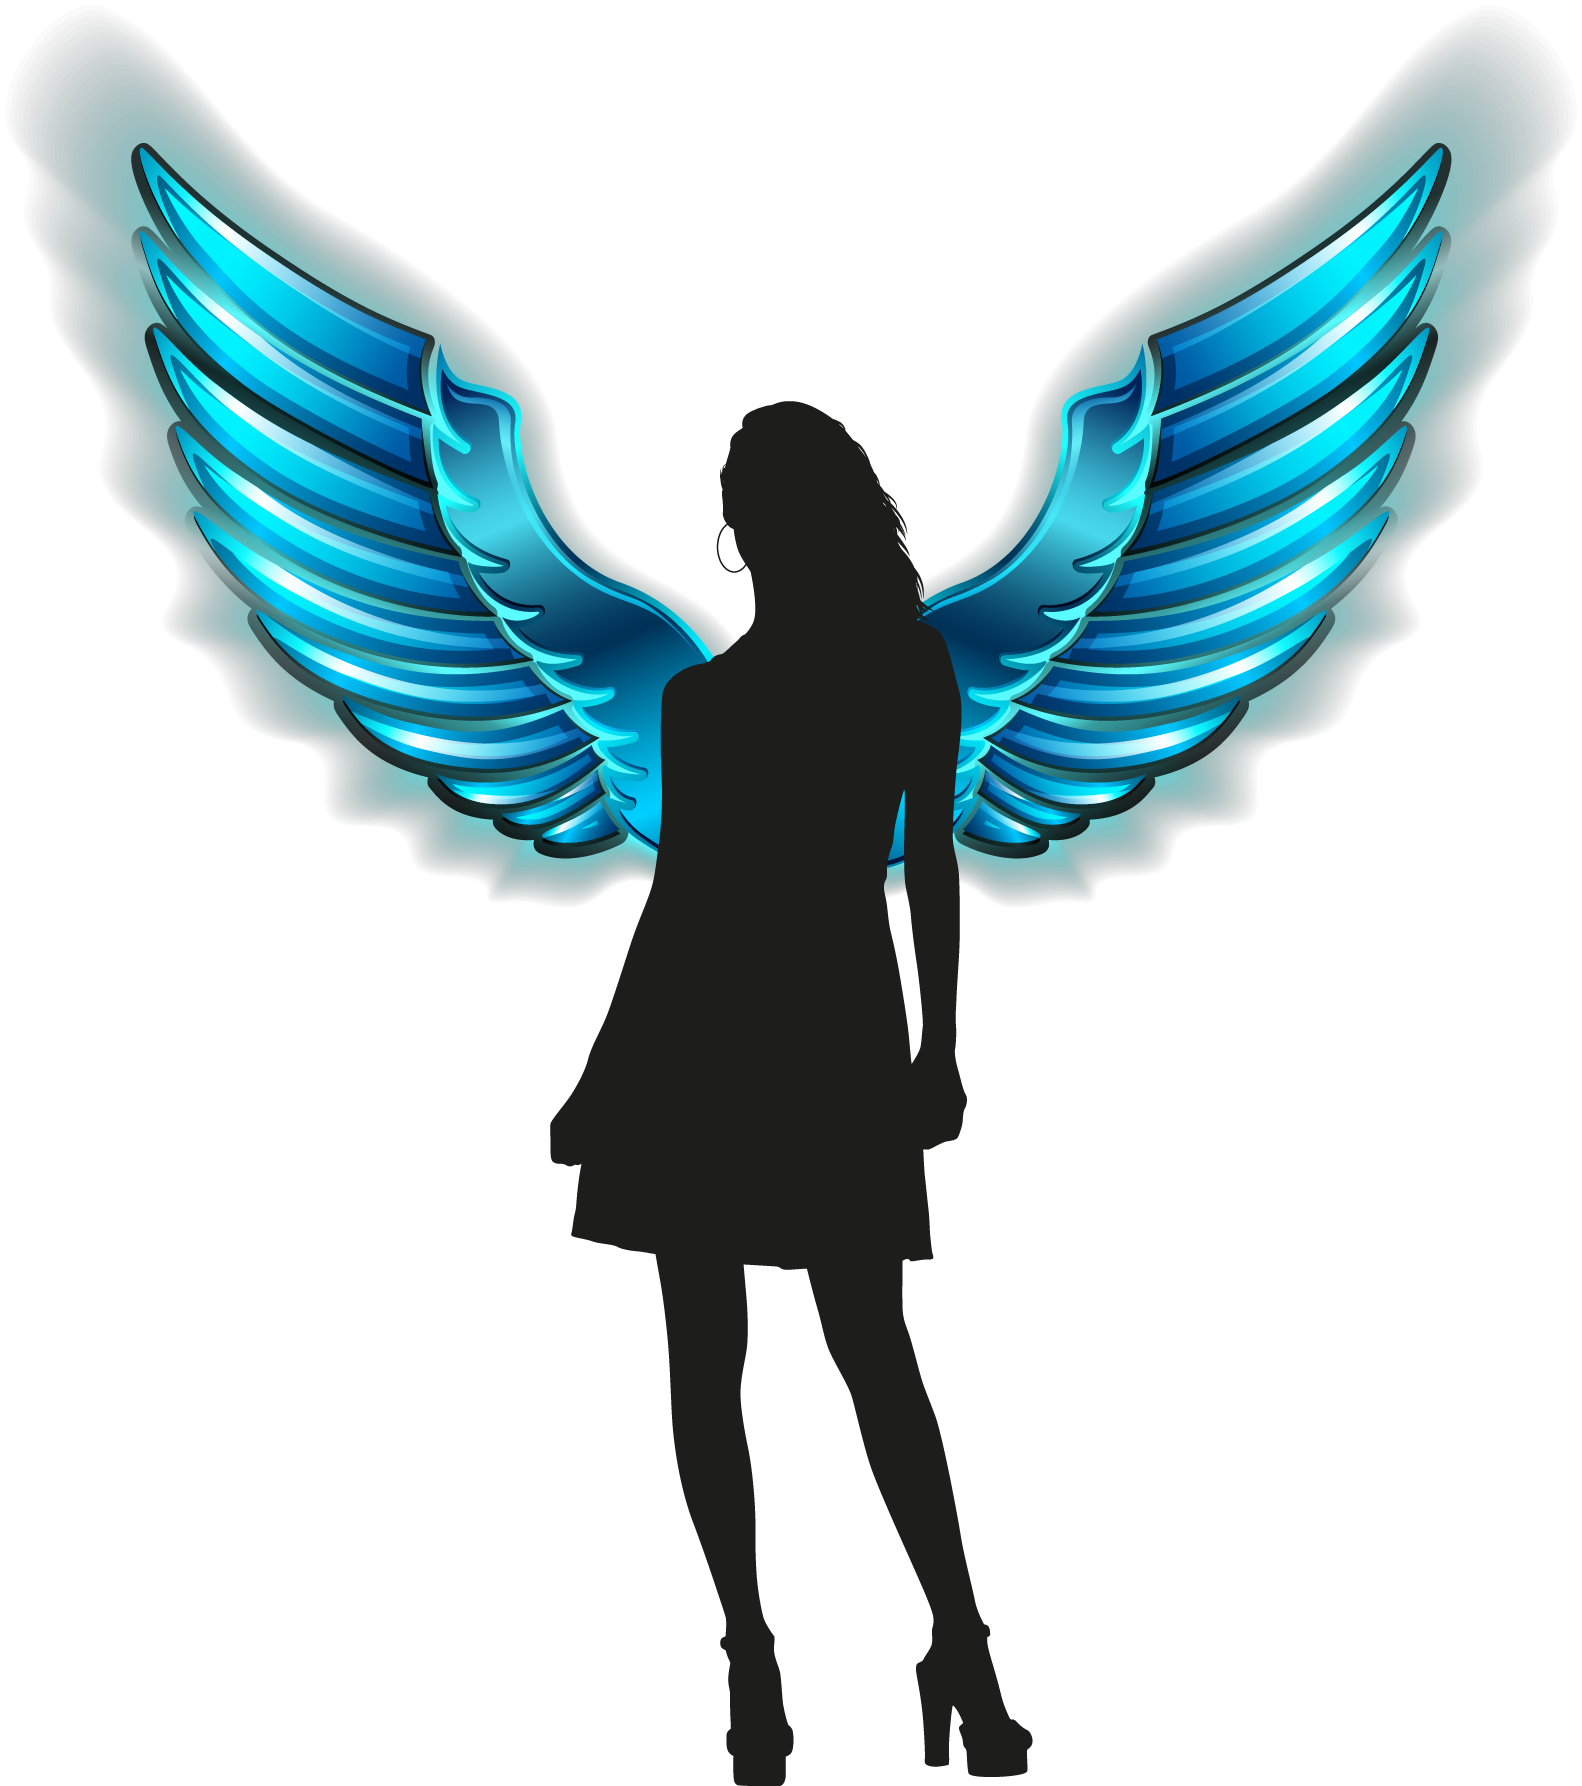 Wing clipart guardian angel. Silhouette tattoos at getdrawings